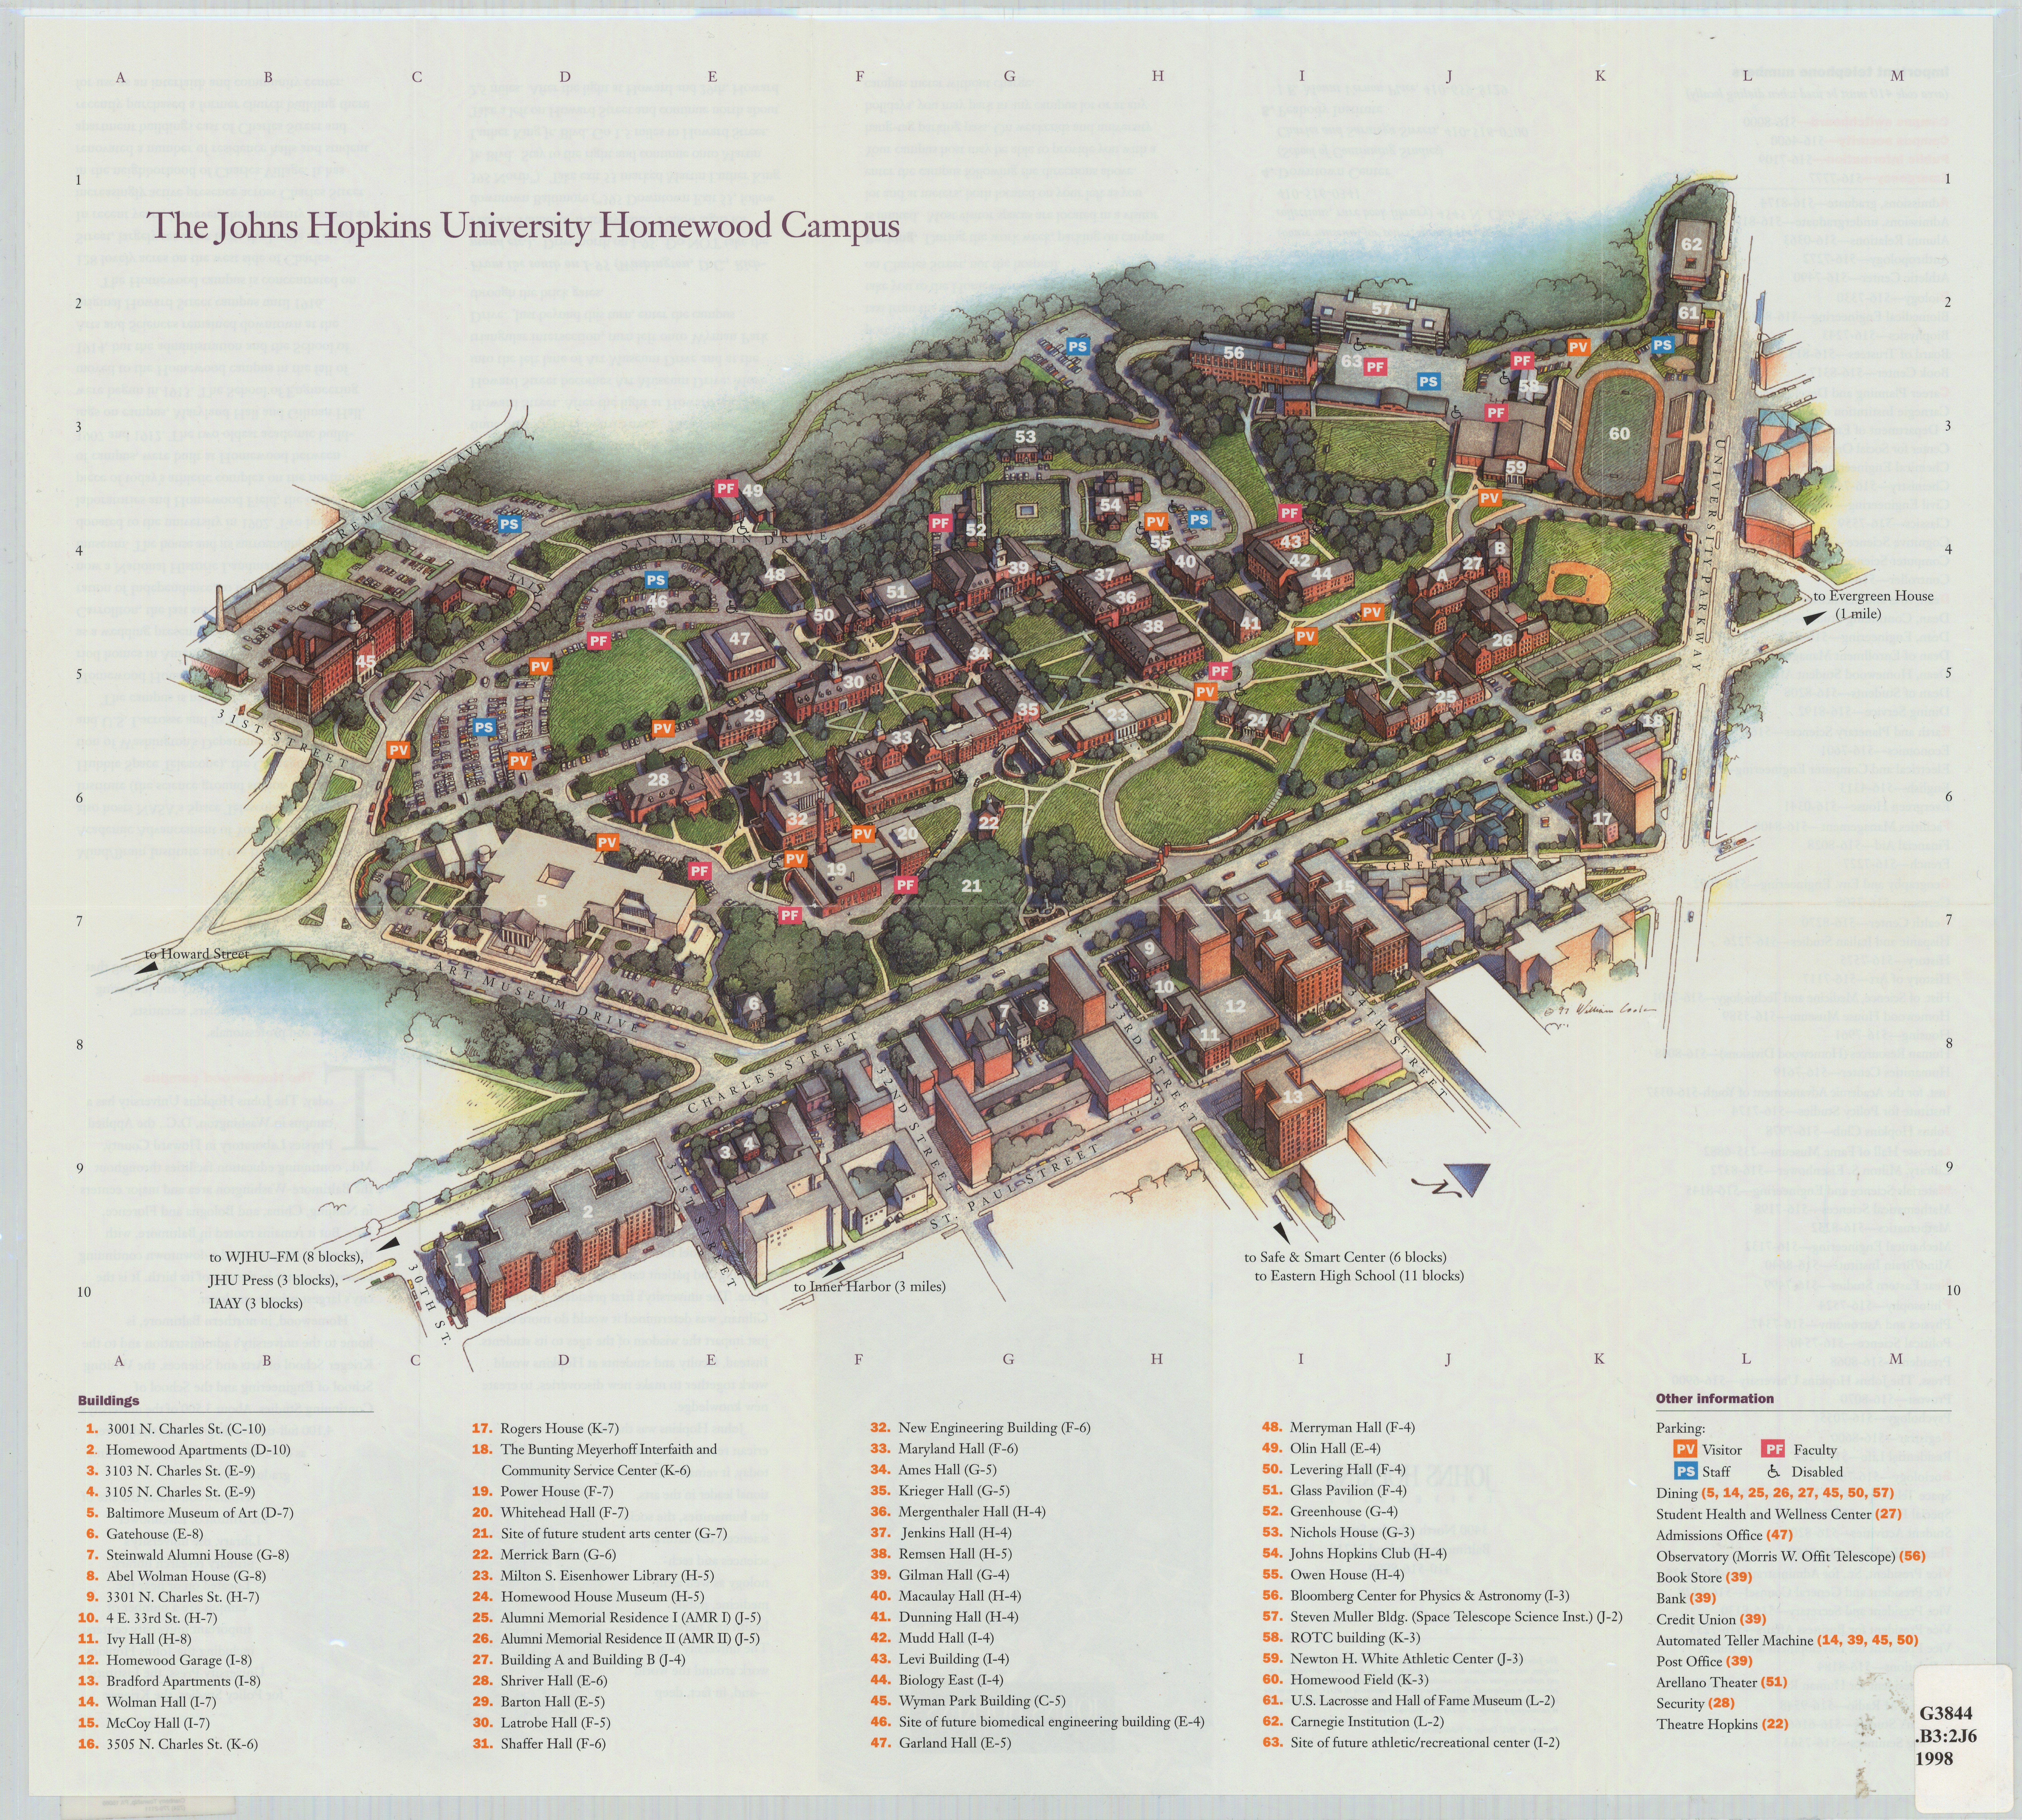 Jhh Campus Map.The Johns Hopkins University Homewood Campus